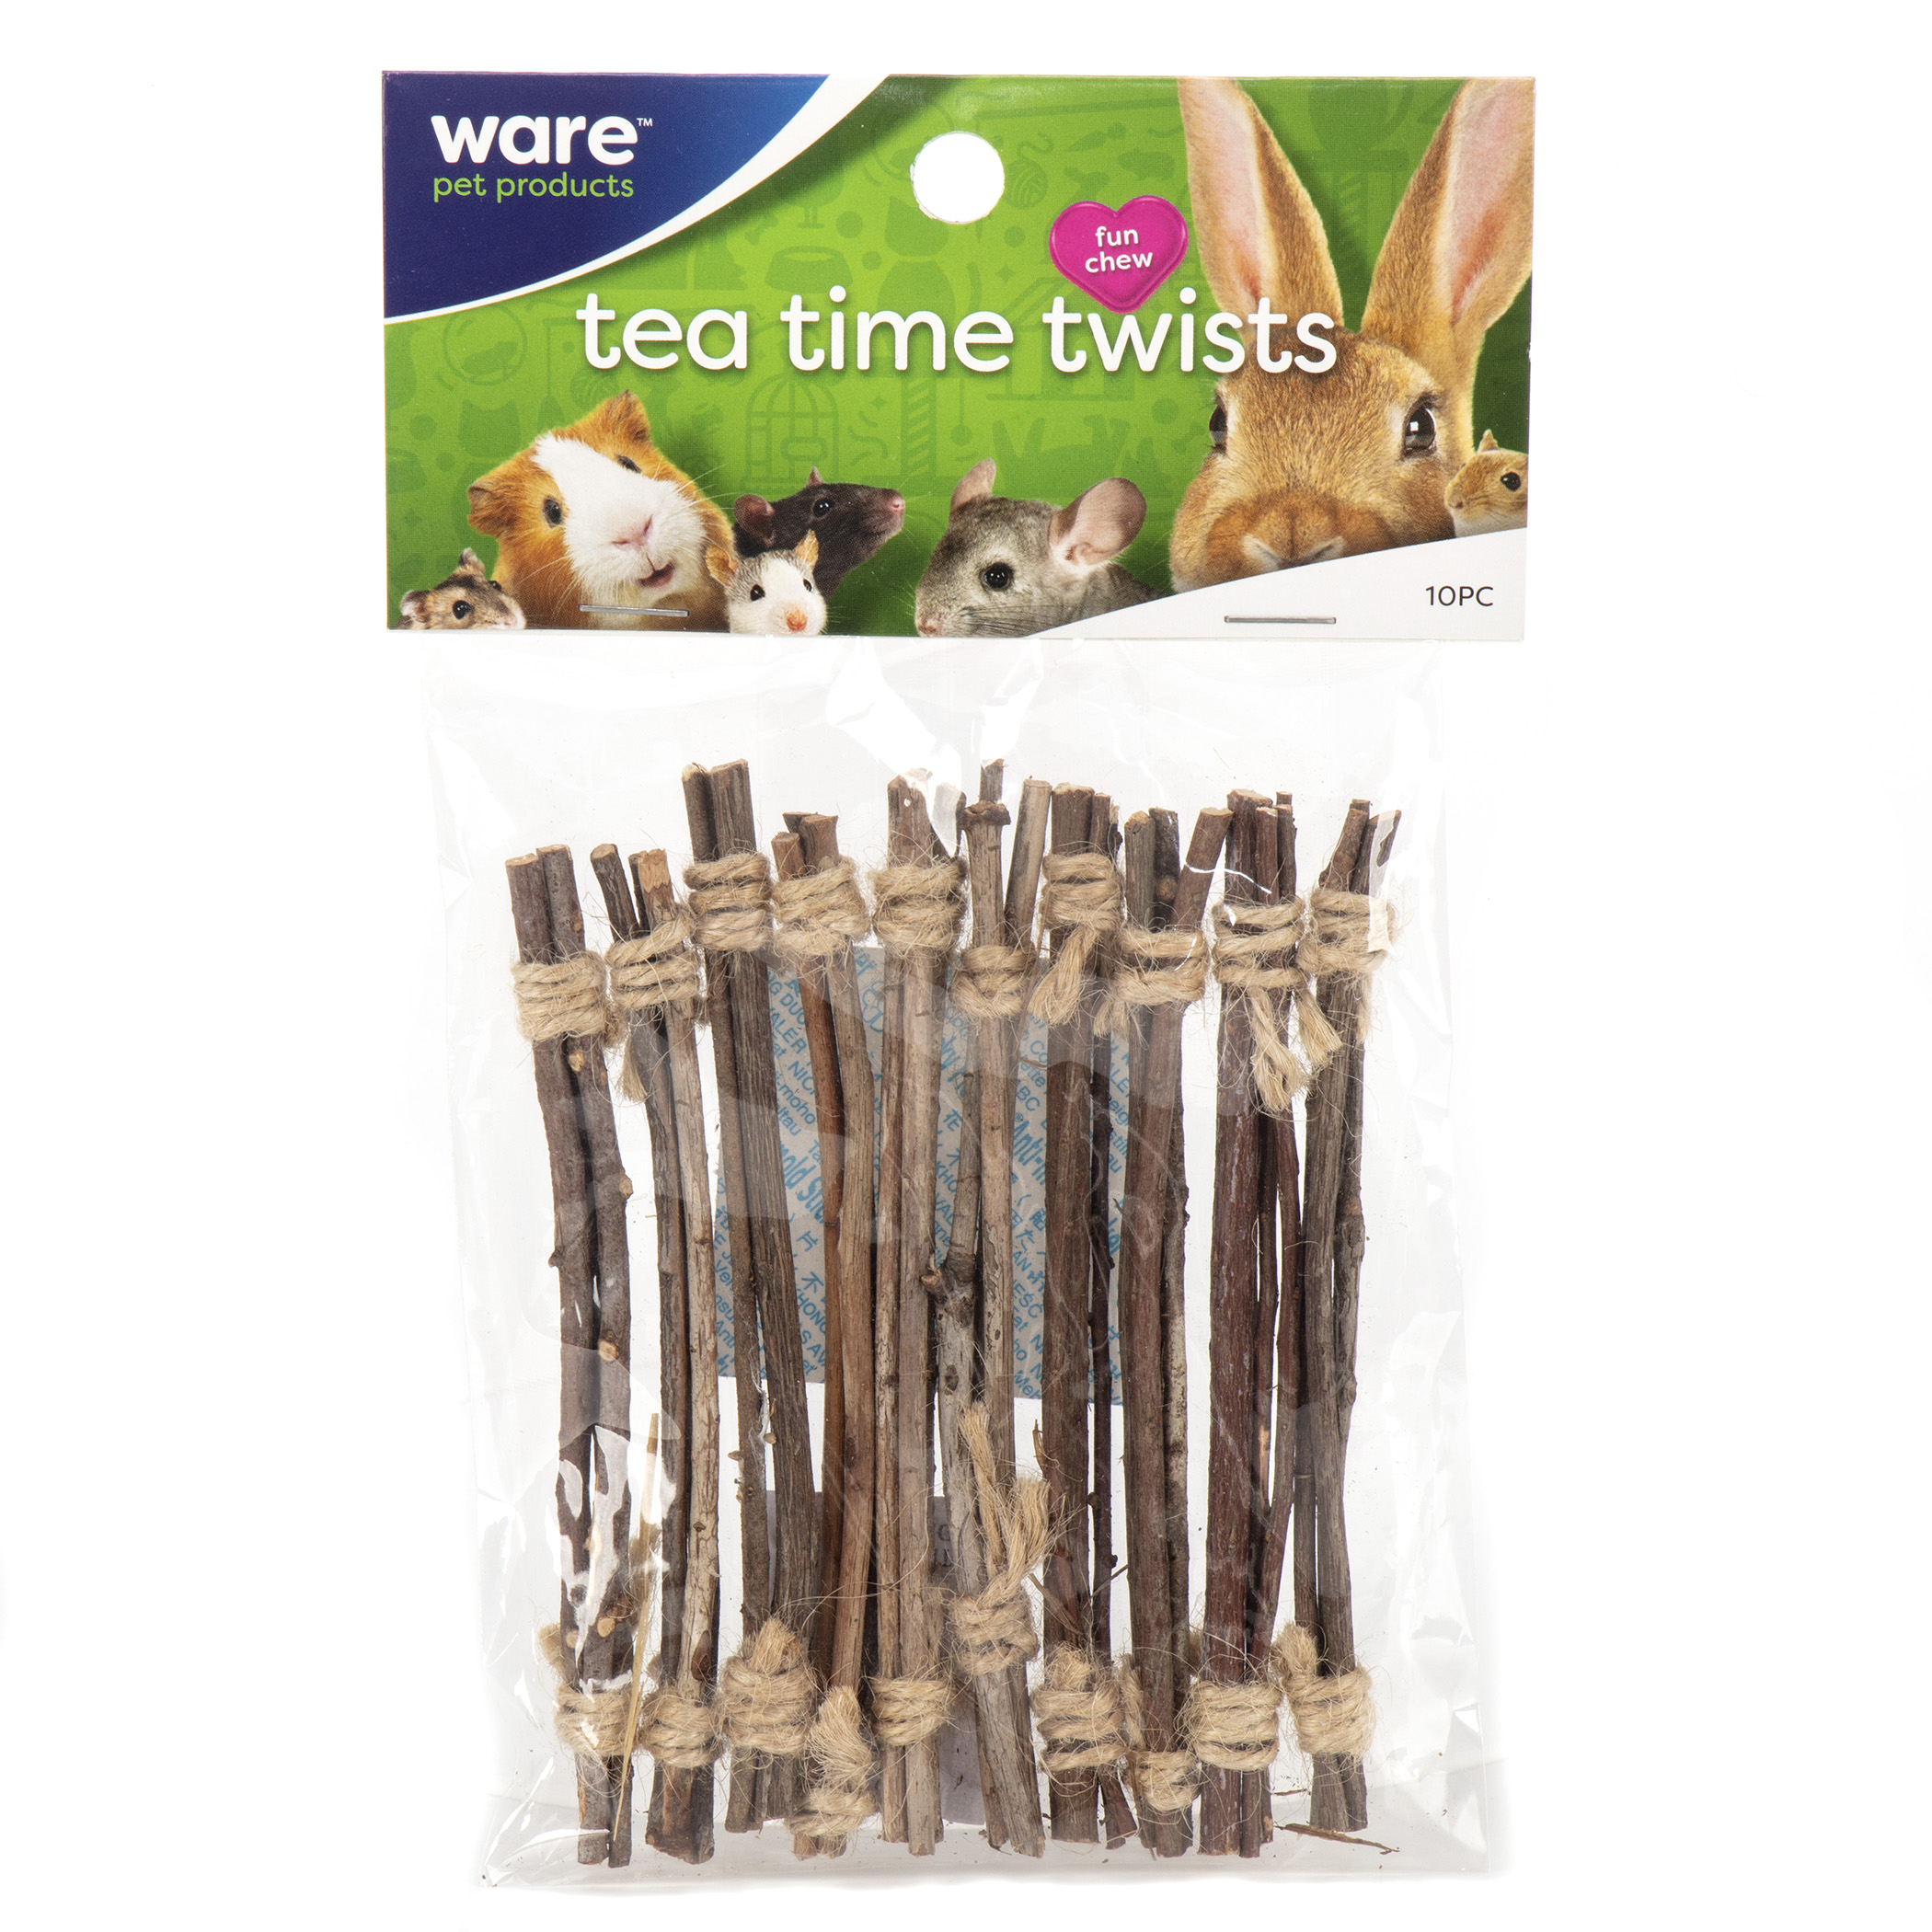 Ware Tea Time Twists, Tooth Trimming Twigs for Small Pets Image